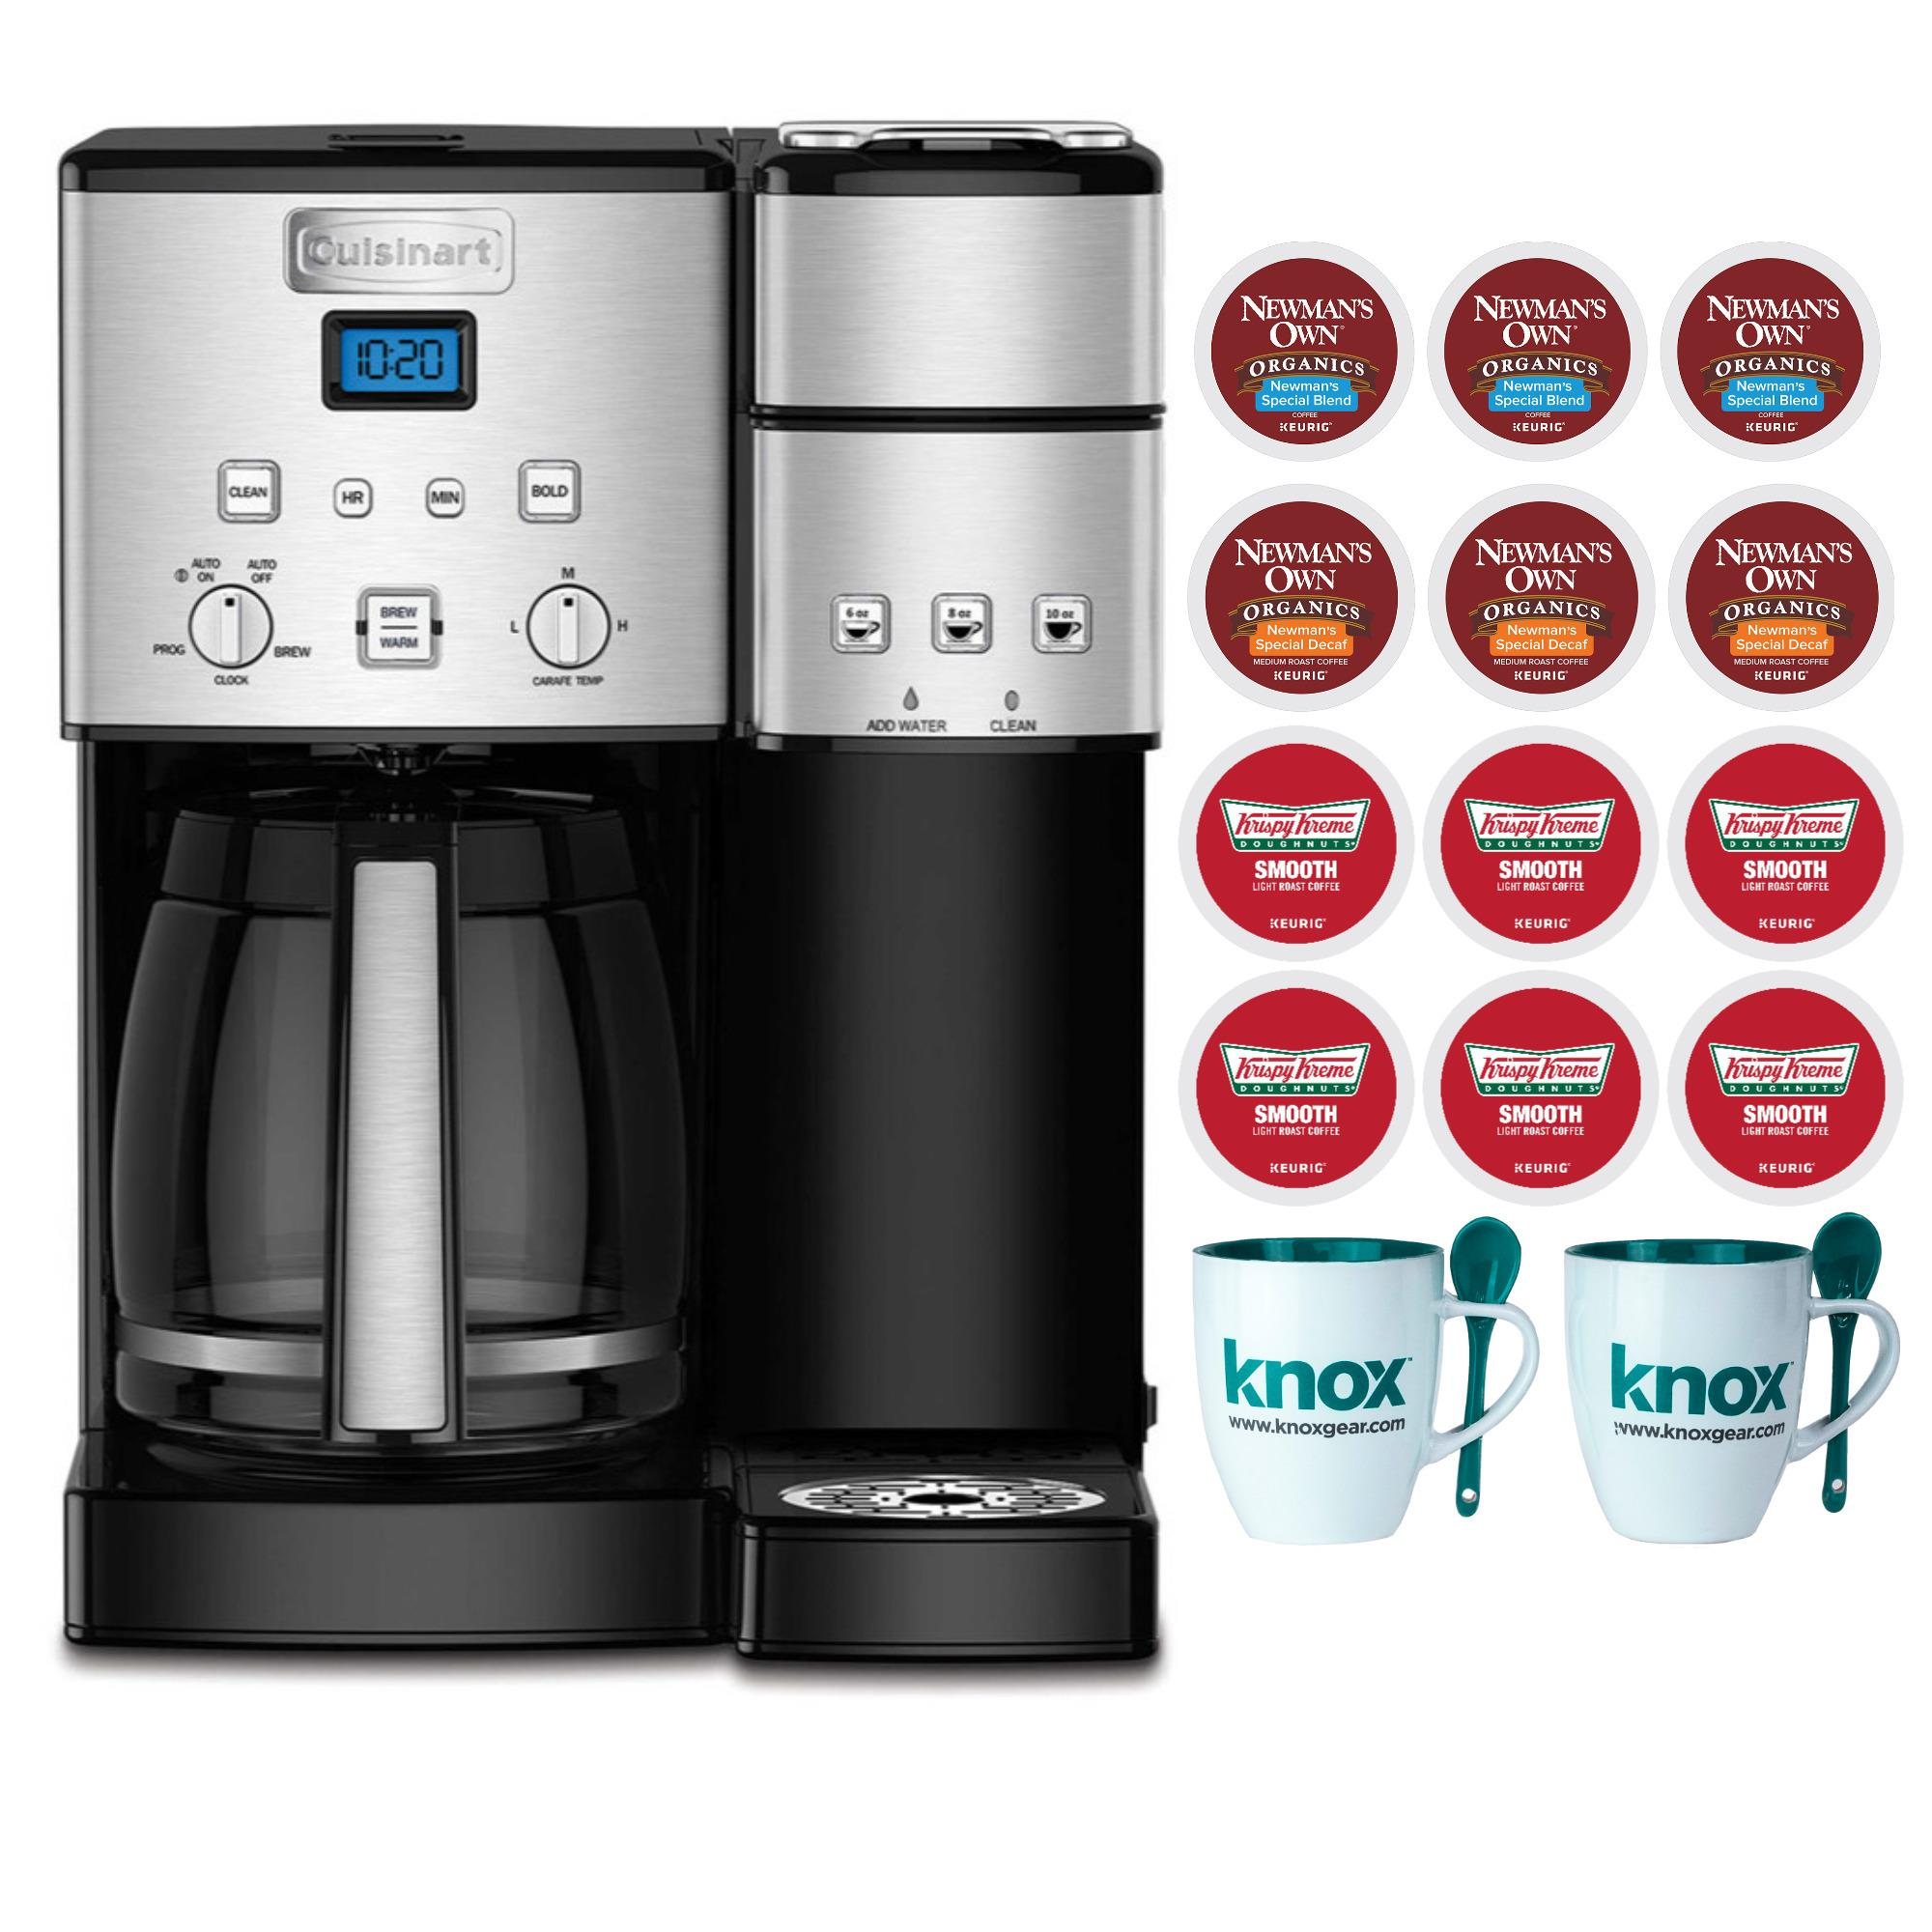 Cuisinart SS-15 12-Cup Coffee Maker, Single-Serve Brewer with 12 K-cups and Mugs (Refurbished)